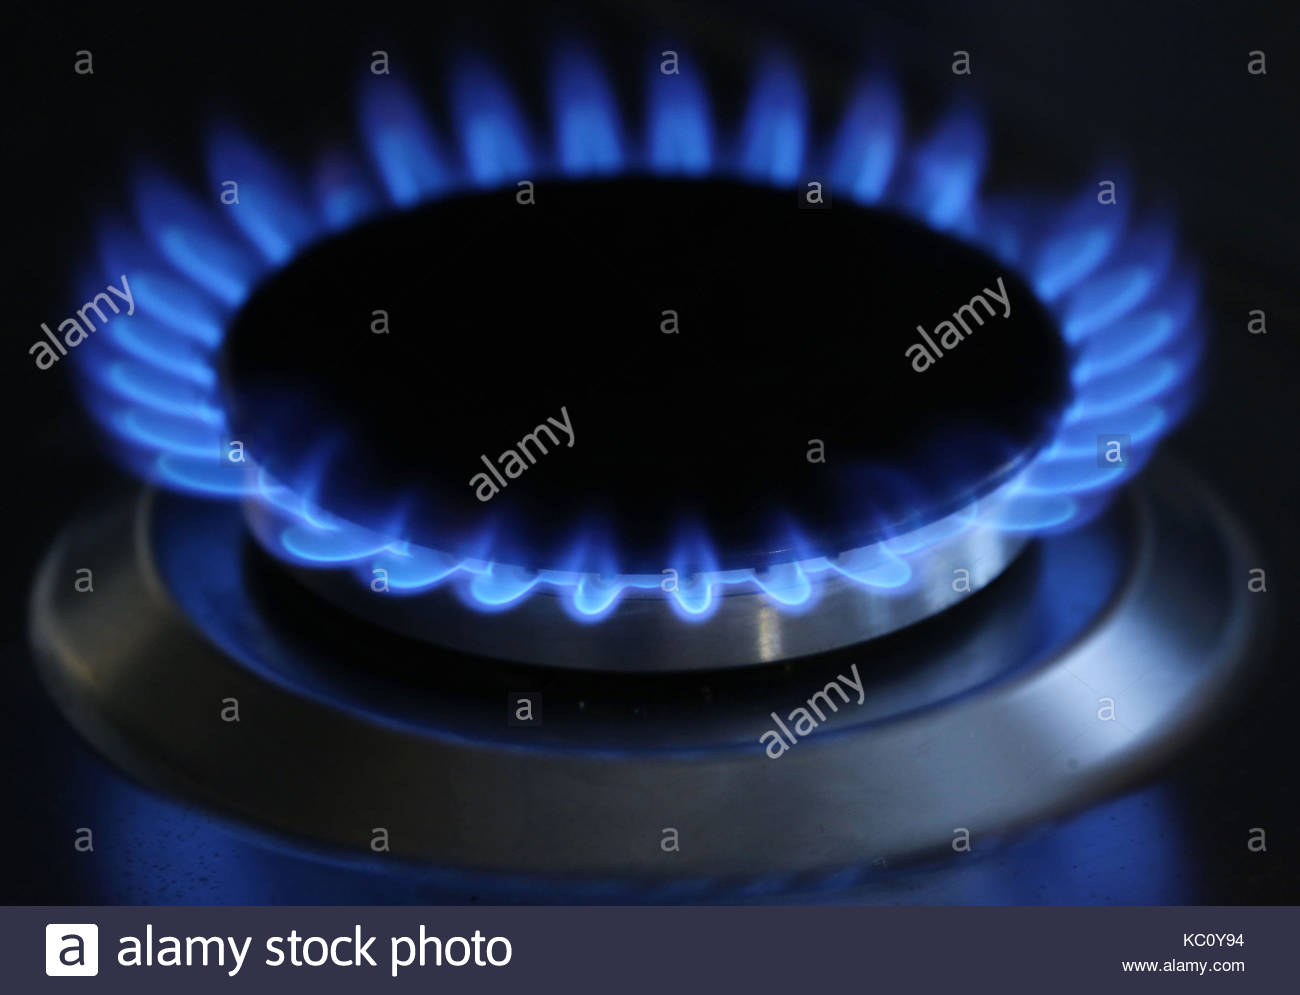 EMBARGOED TO 0001 MONDAY OCTOBER 2 File photo dated 11/10/13 of a general view of a gas hob burning, as a combination - Stock Image